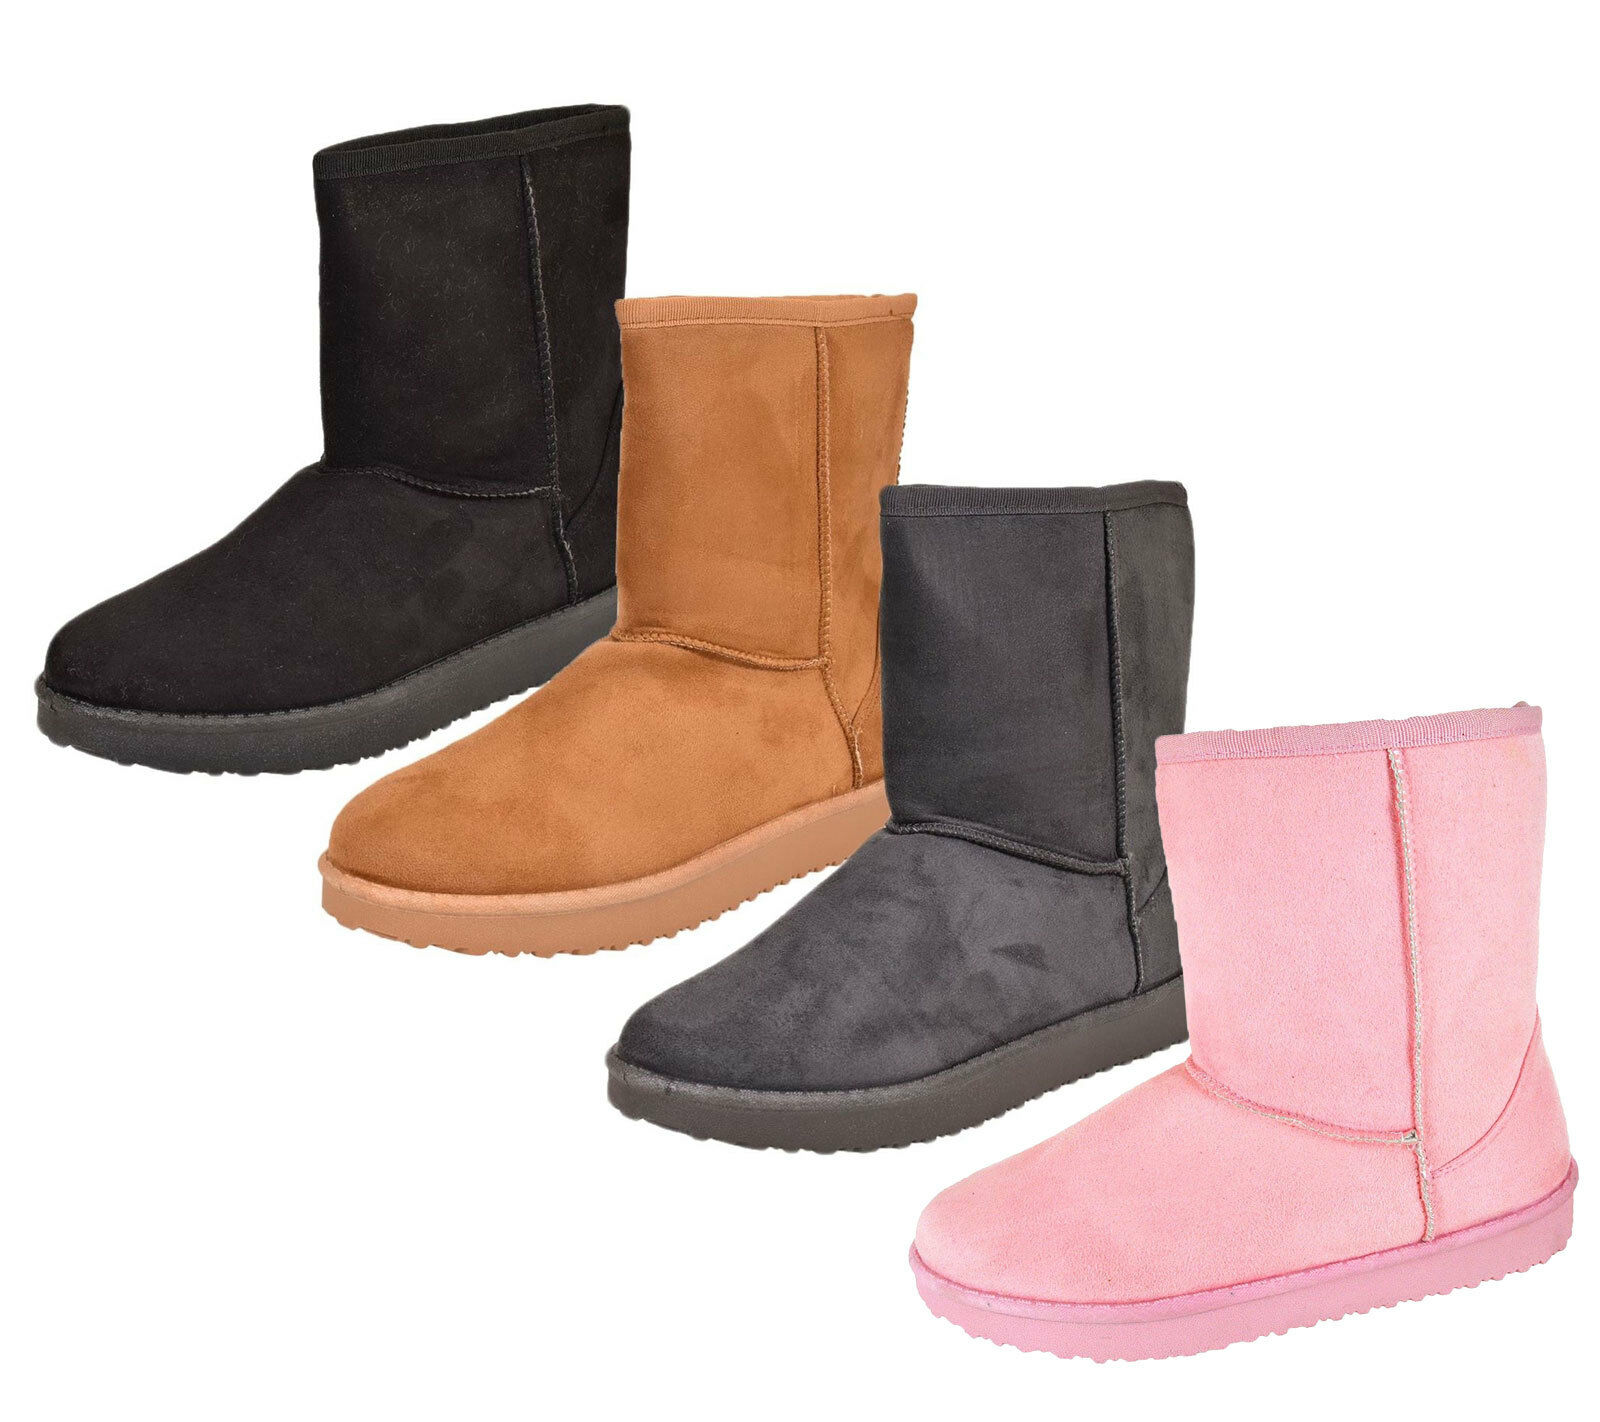 Womens Snow Boots Ladies Winter Mid Calf Length Warm Flat Faux Suede Fur shoes